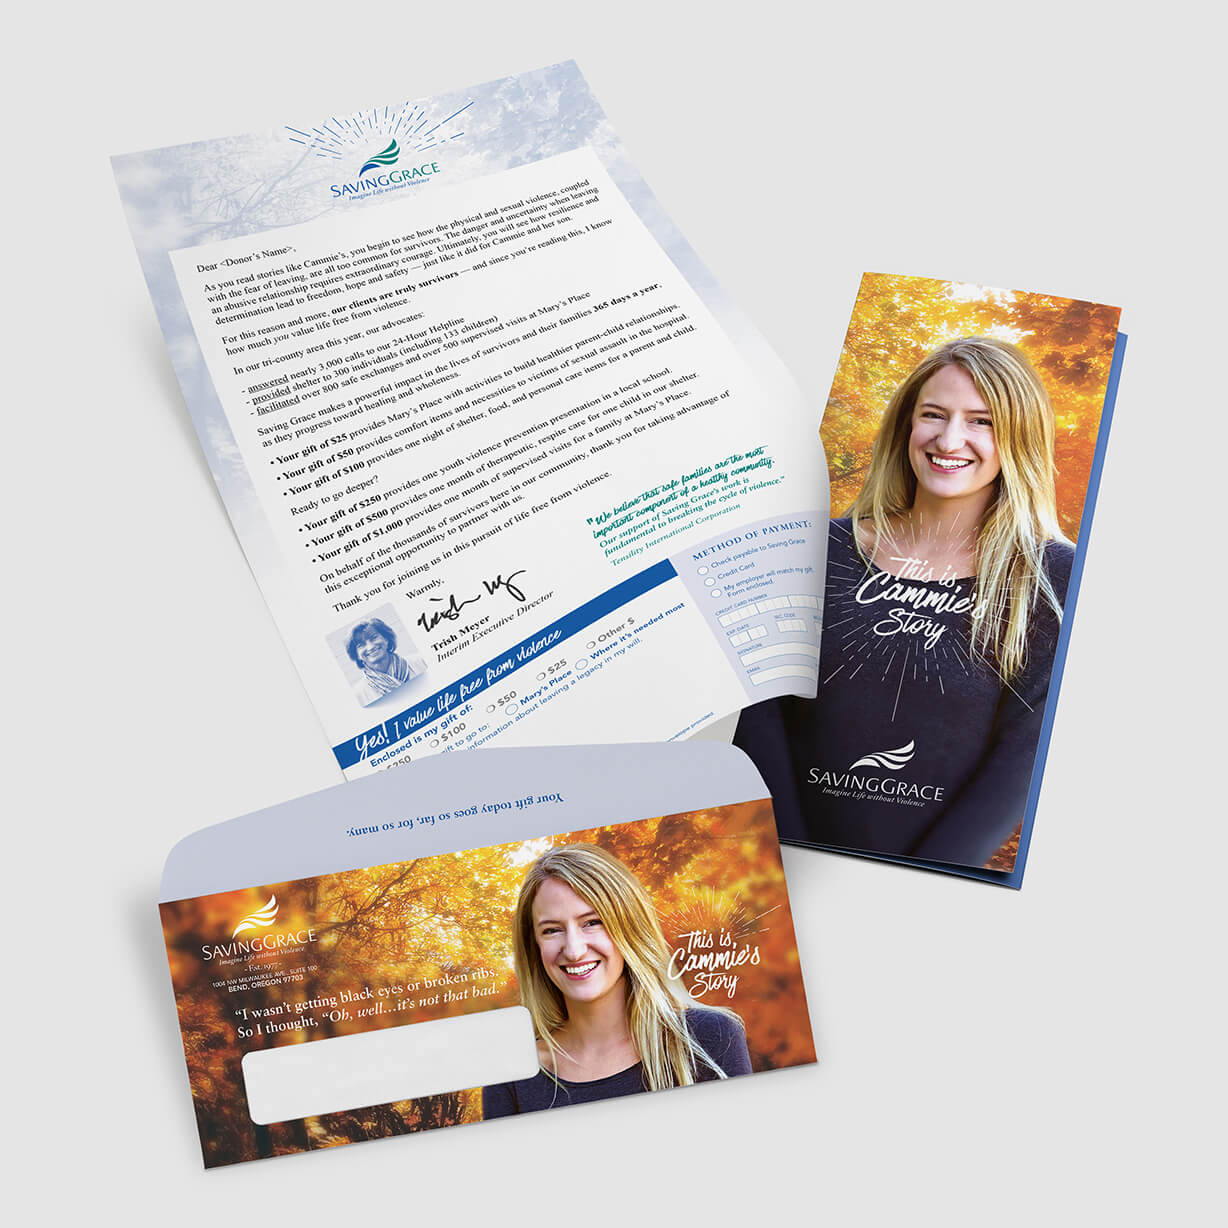 Fundraiser direct mail for a women's shelter